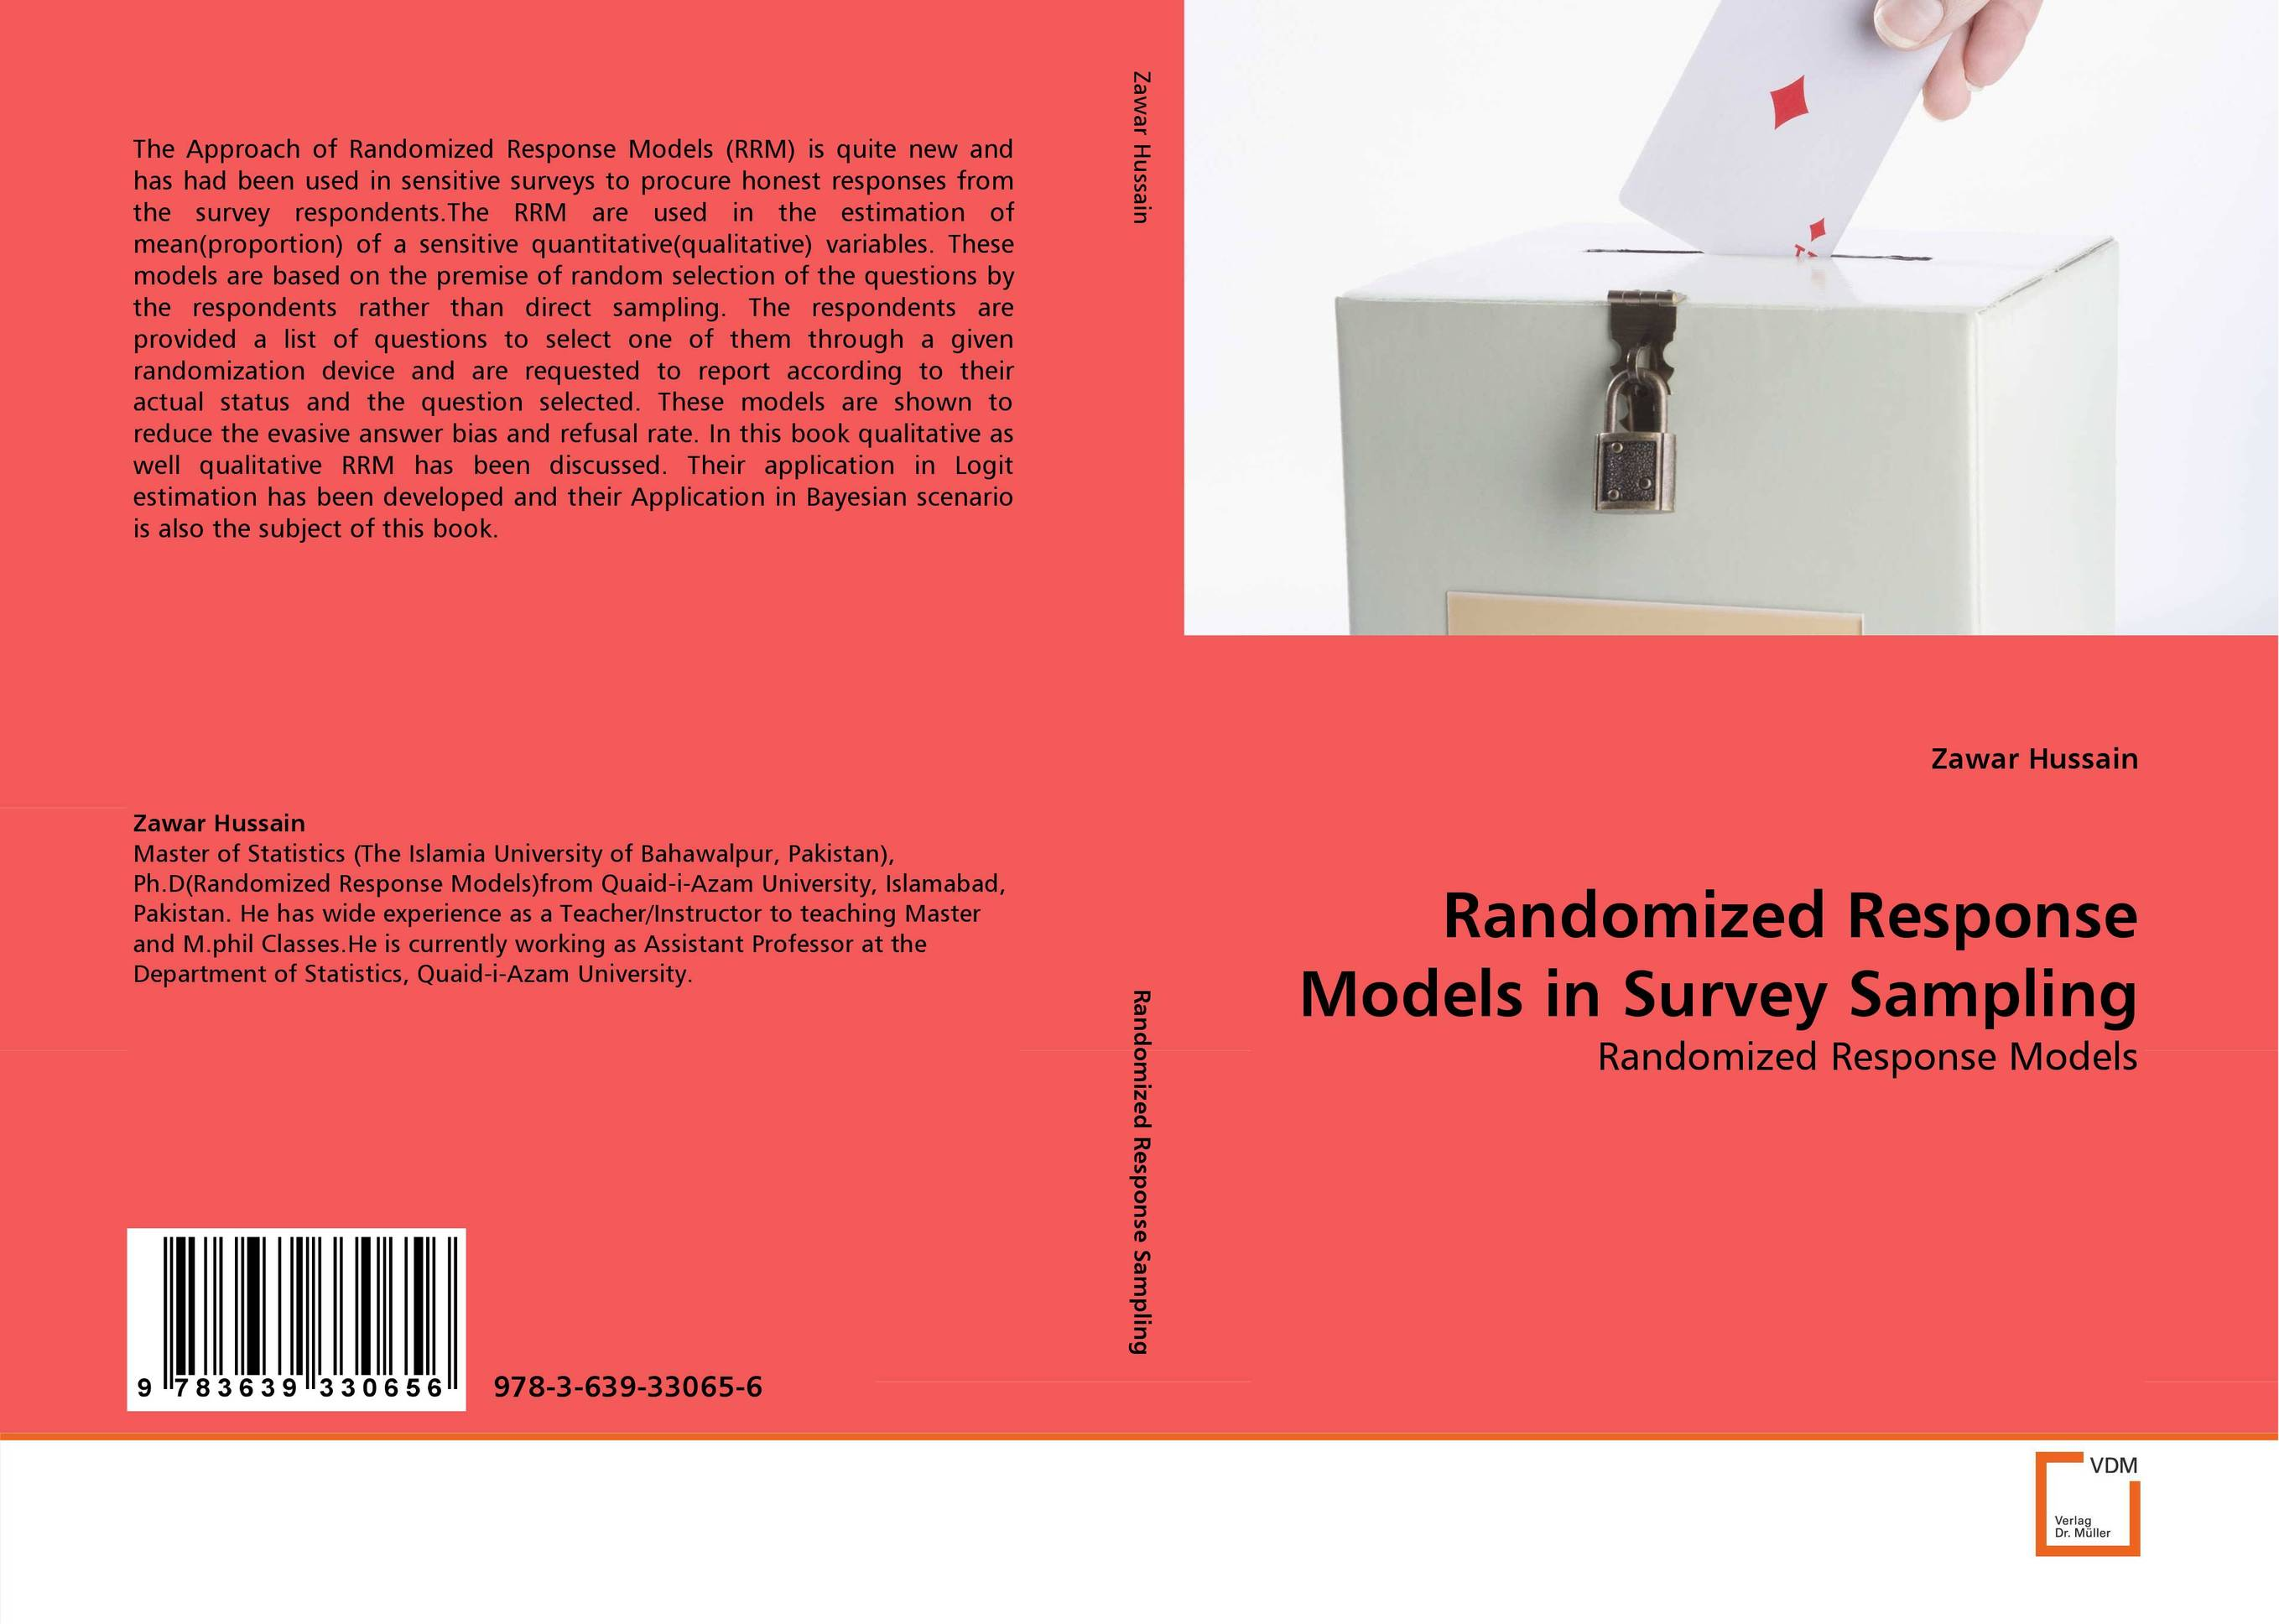 Randomized Response Models in Survey Sampling купить